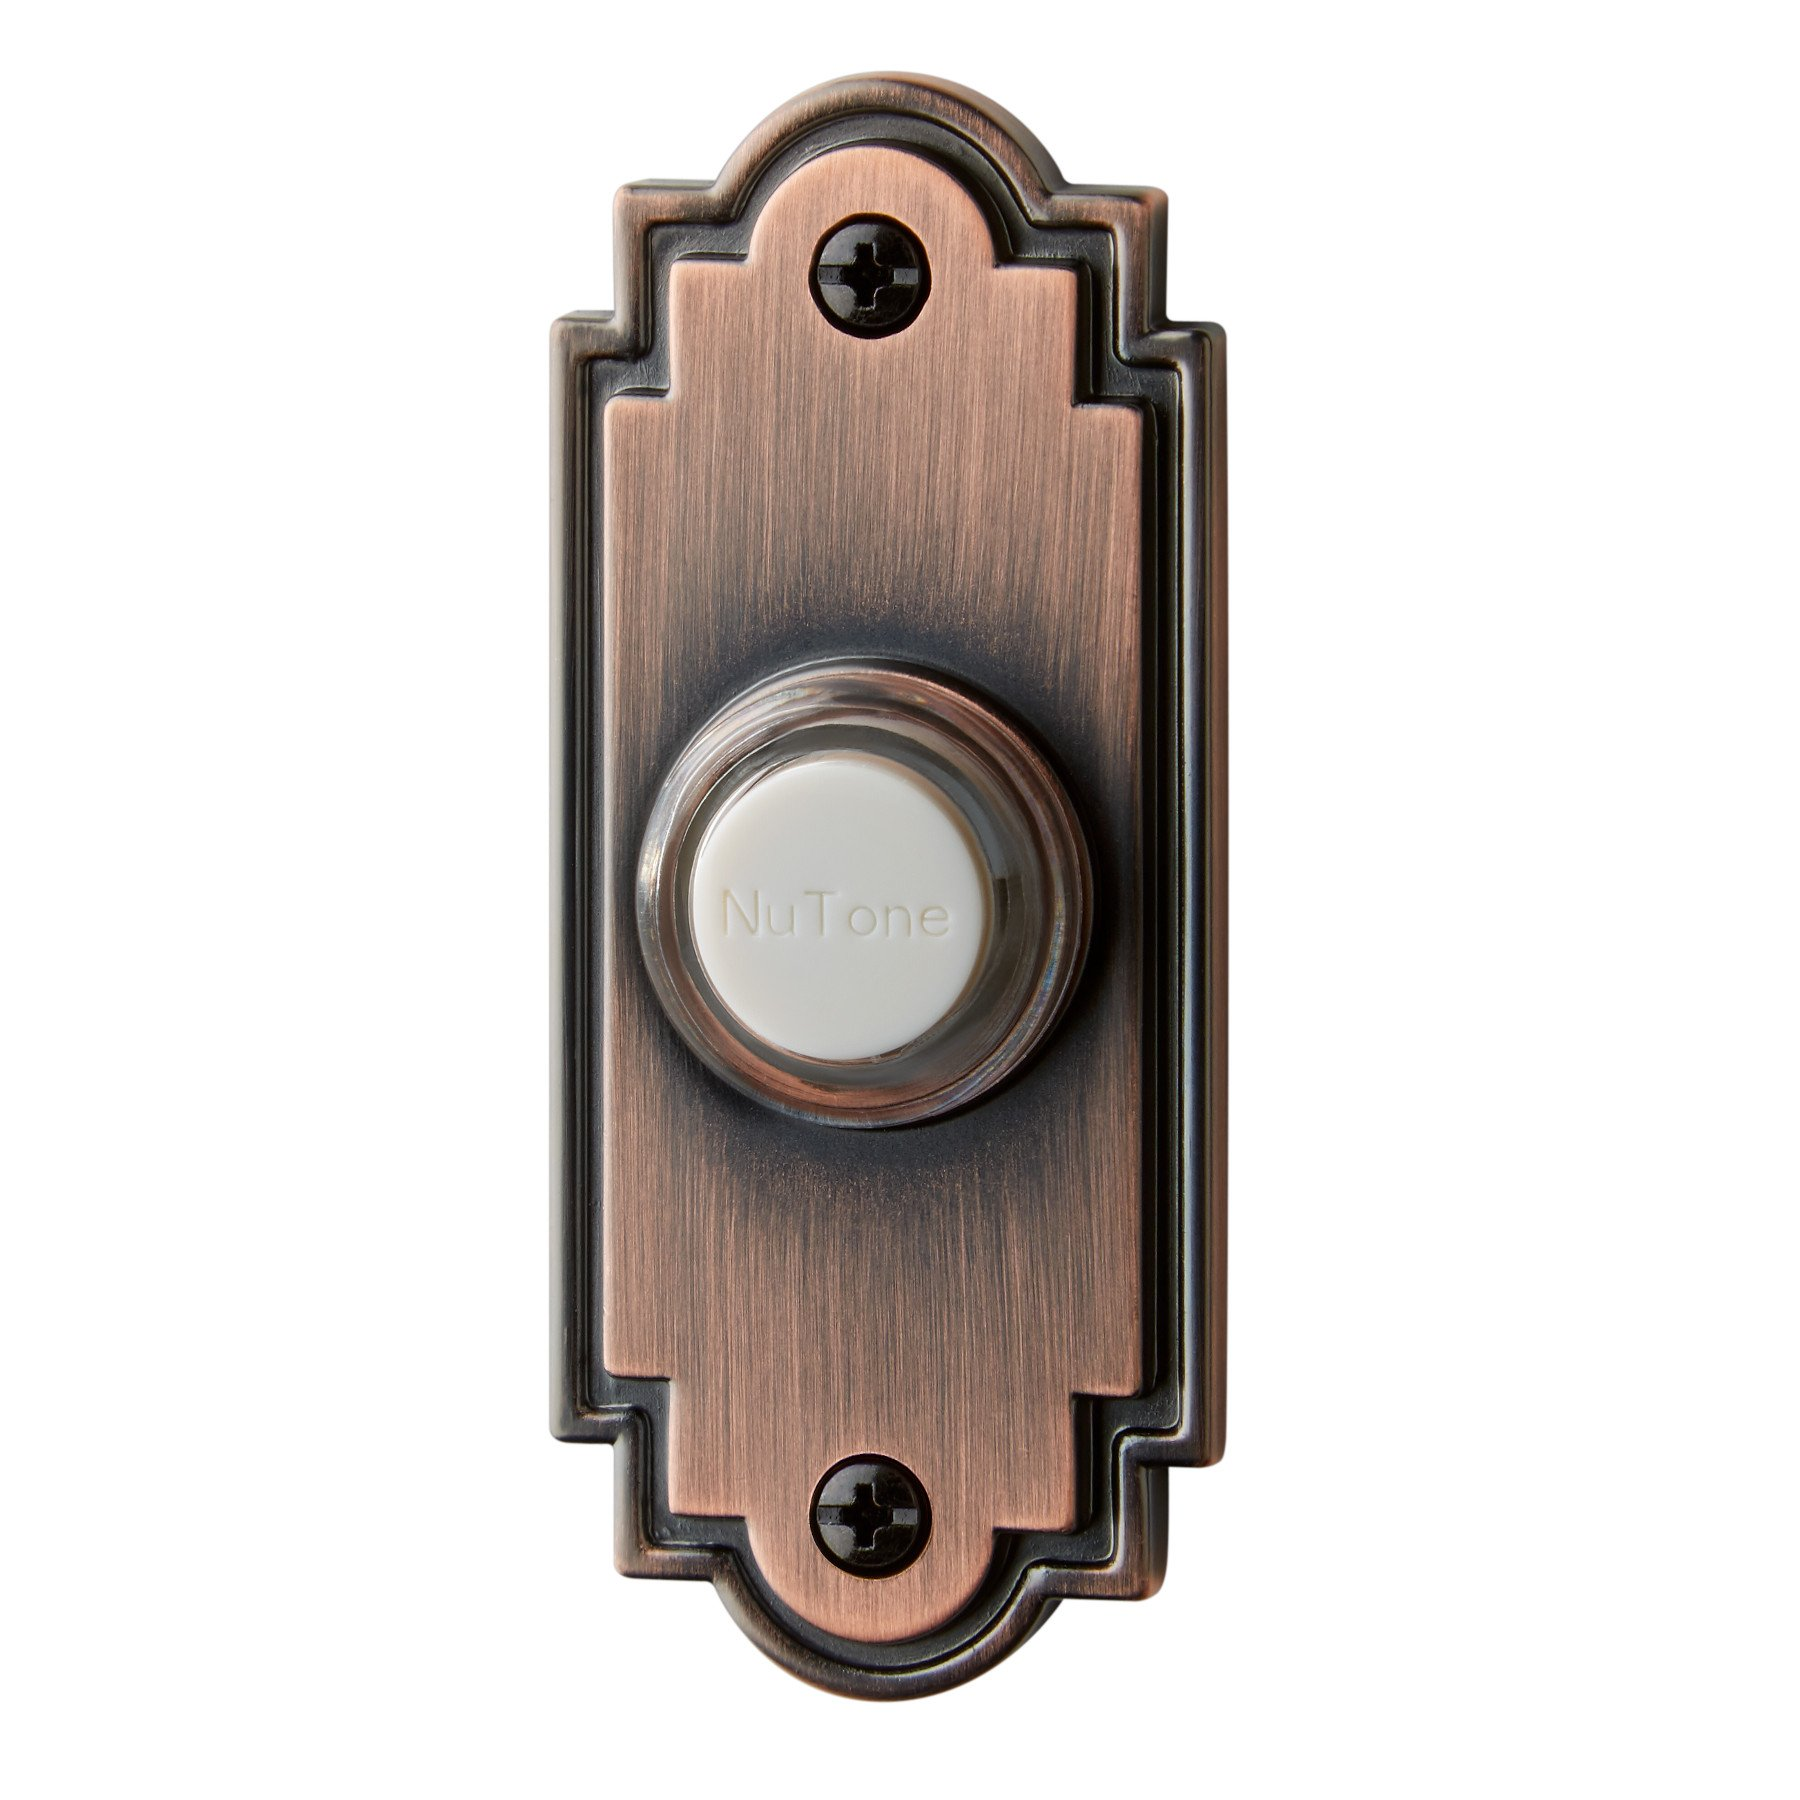 NuTone PB15LBR Wired Lighted Door Chime Push Button, Oil-Rubbed Bronze